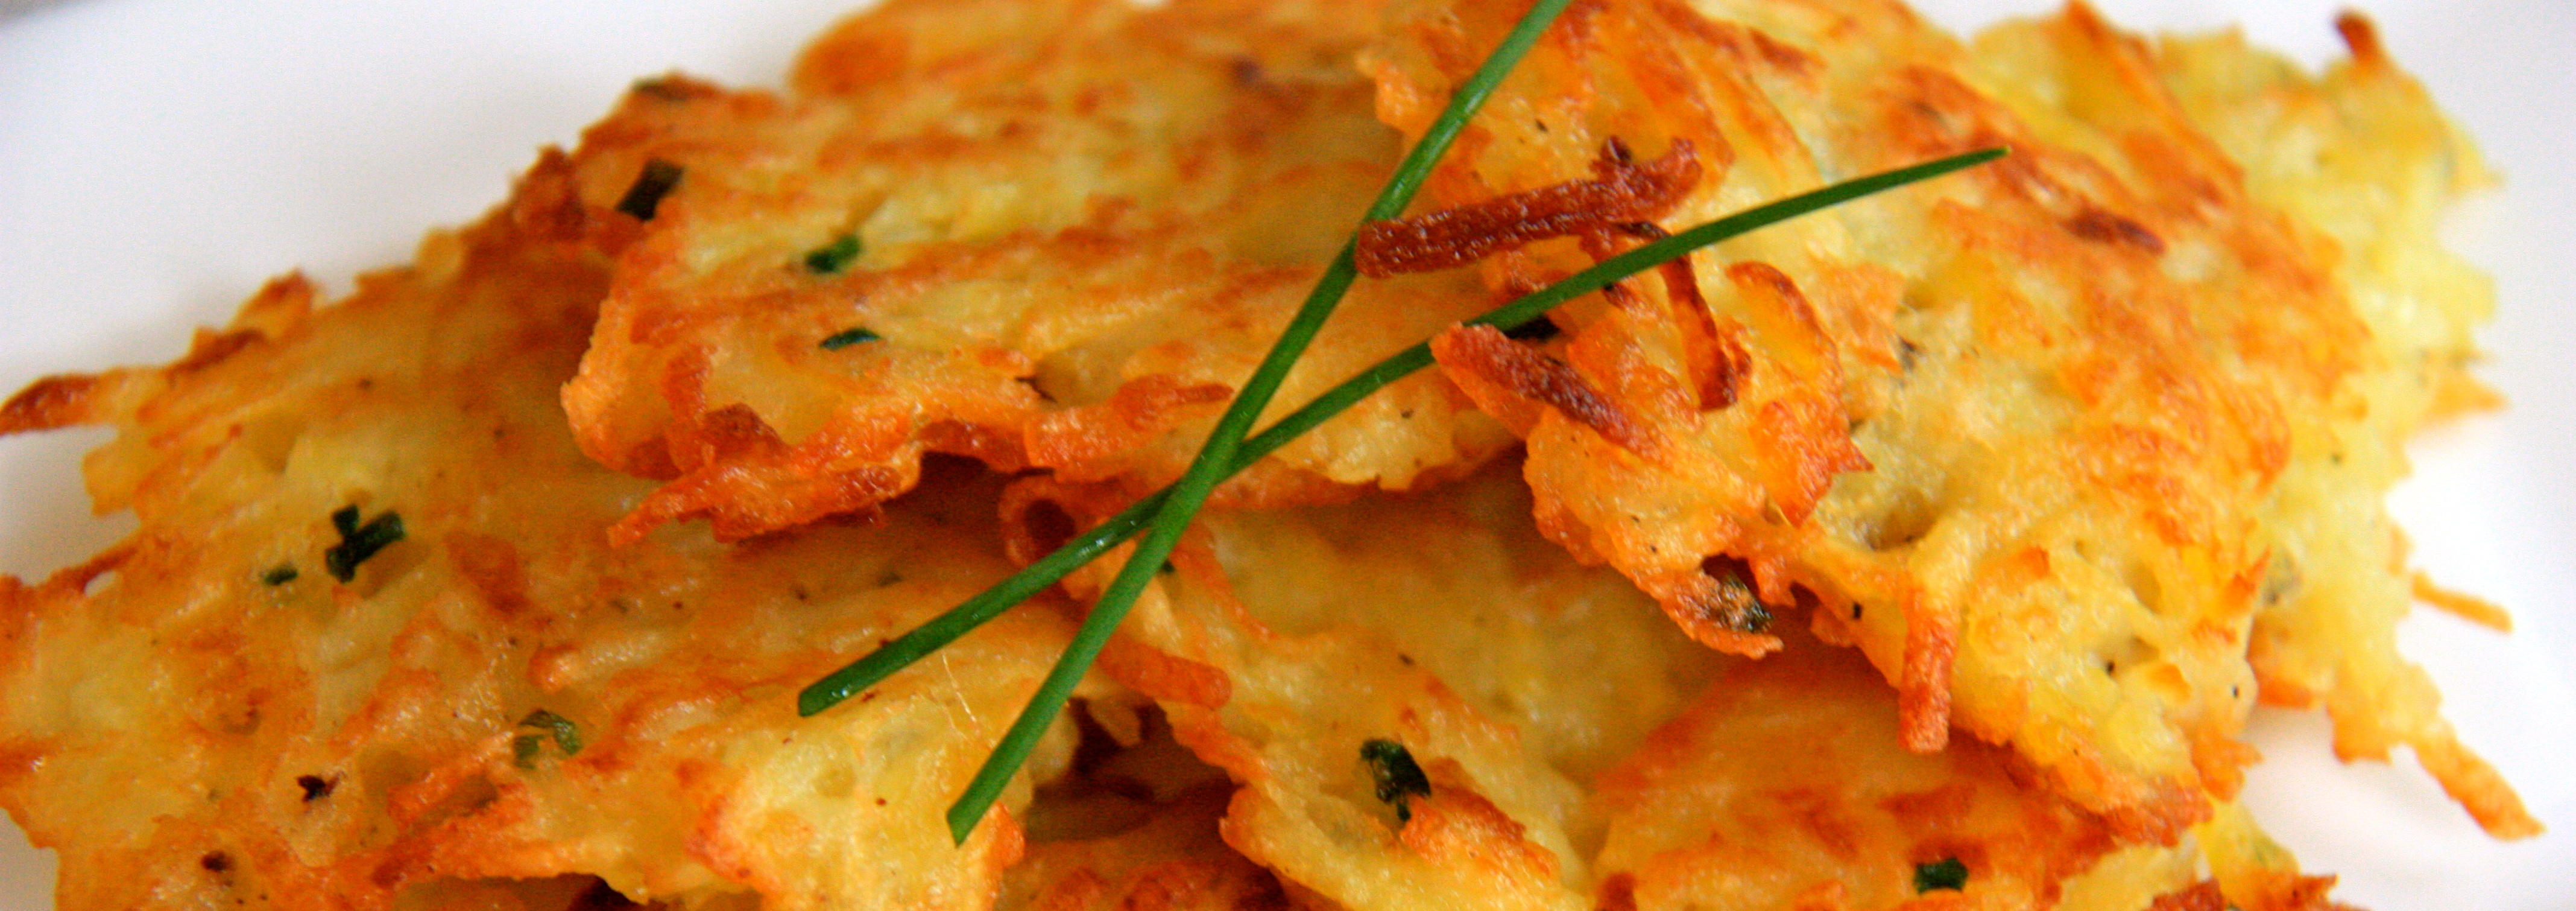 ... potato pancakes potato chive pancake potato chives pancakes potato